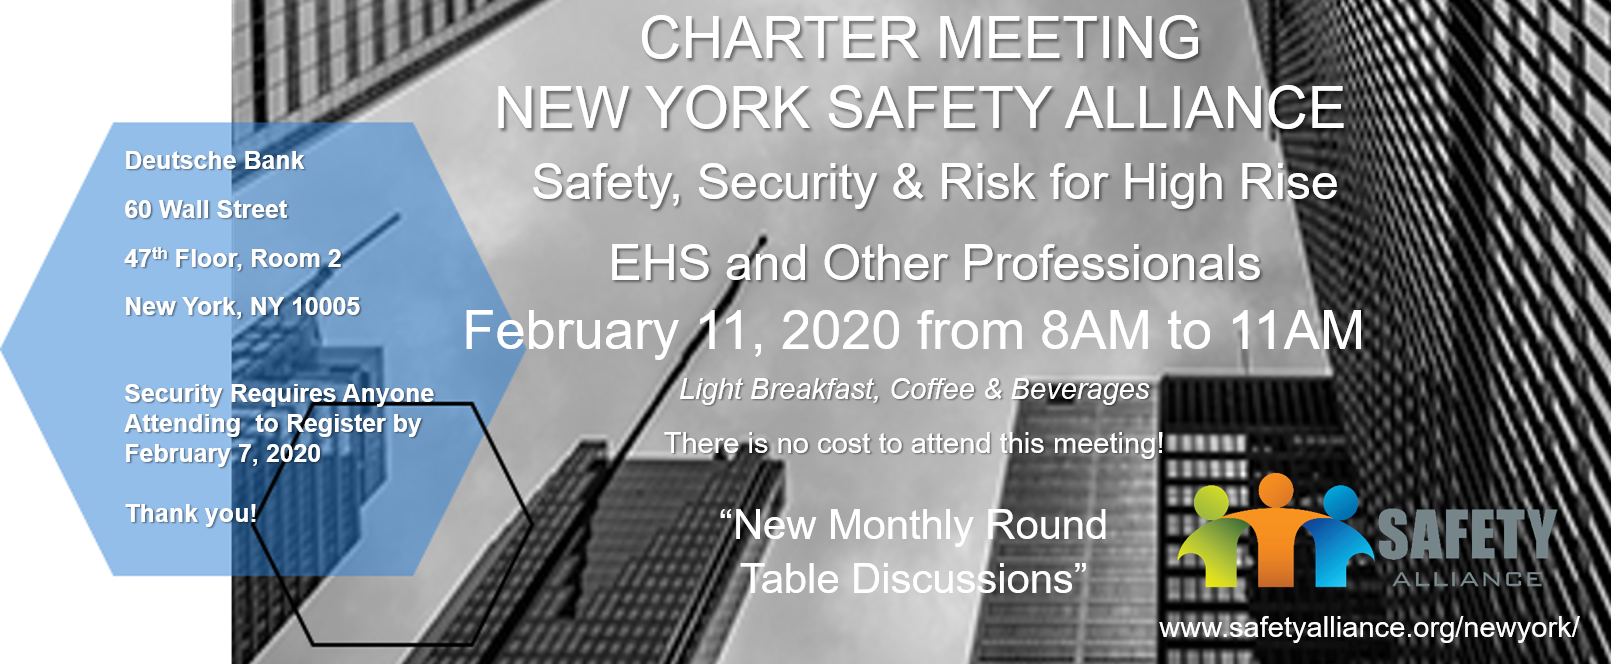 new-york-safety-alliance-2020-meeting